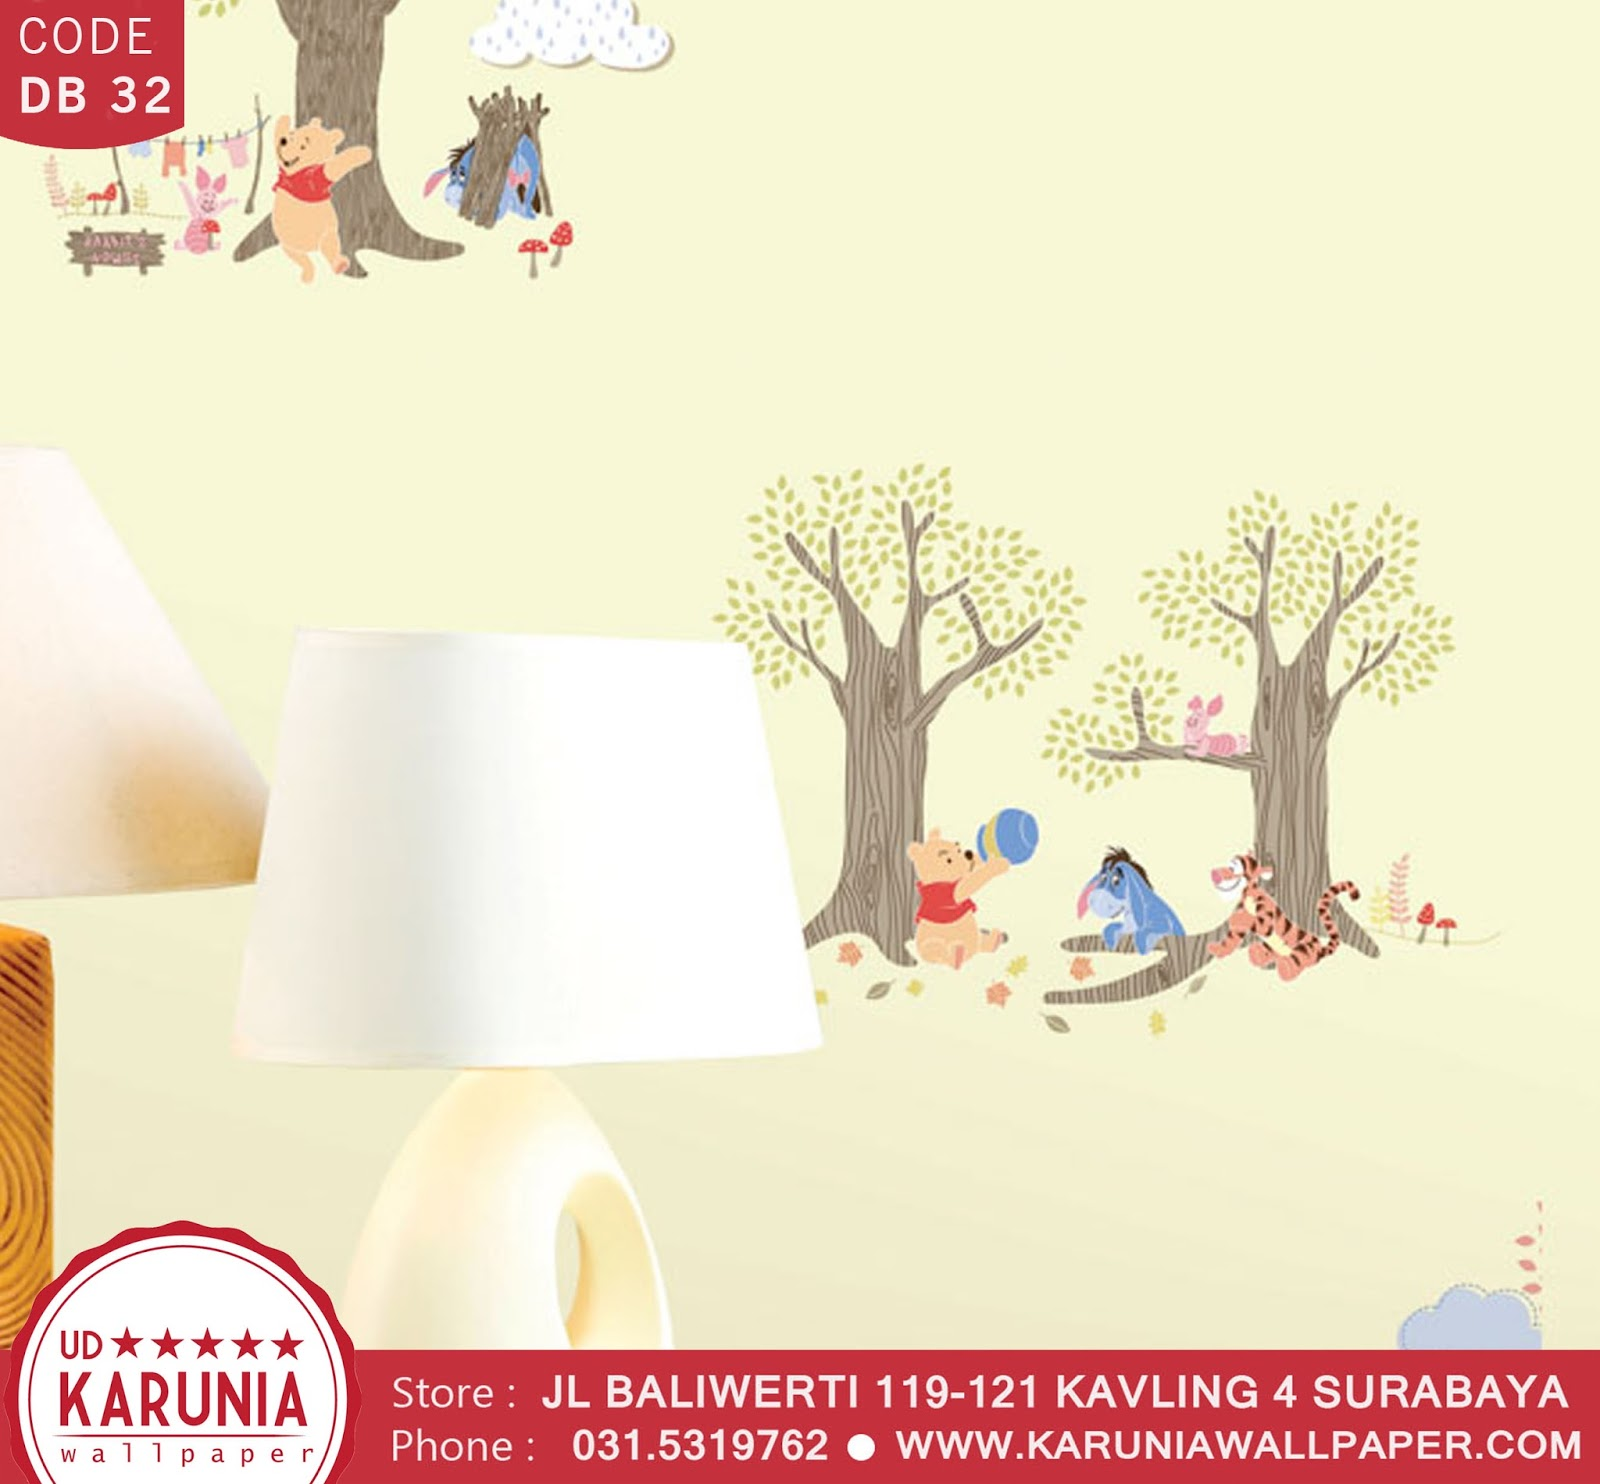 jual wallpaper anak disney winnie the pooh toko karuniawallpaper surabaya